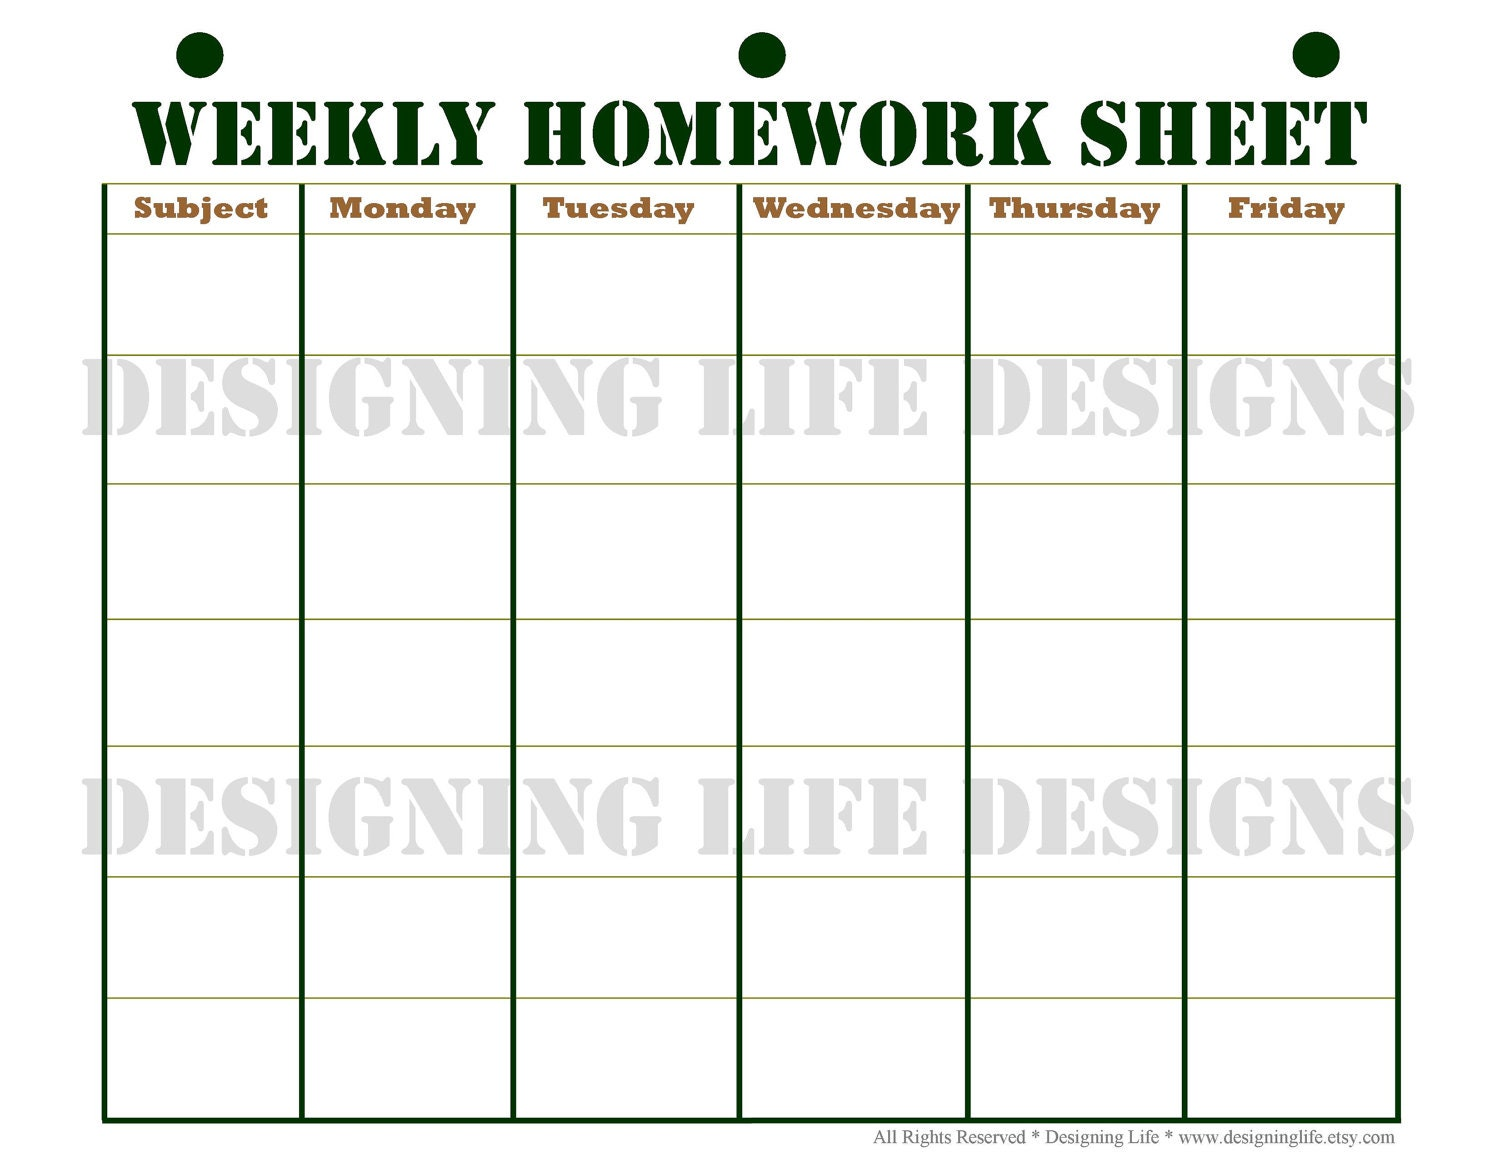 printable homework planner sheets - Romeo.landinez.co